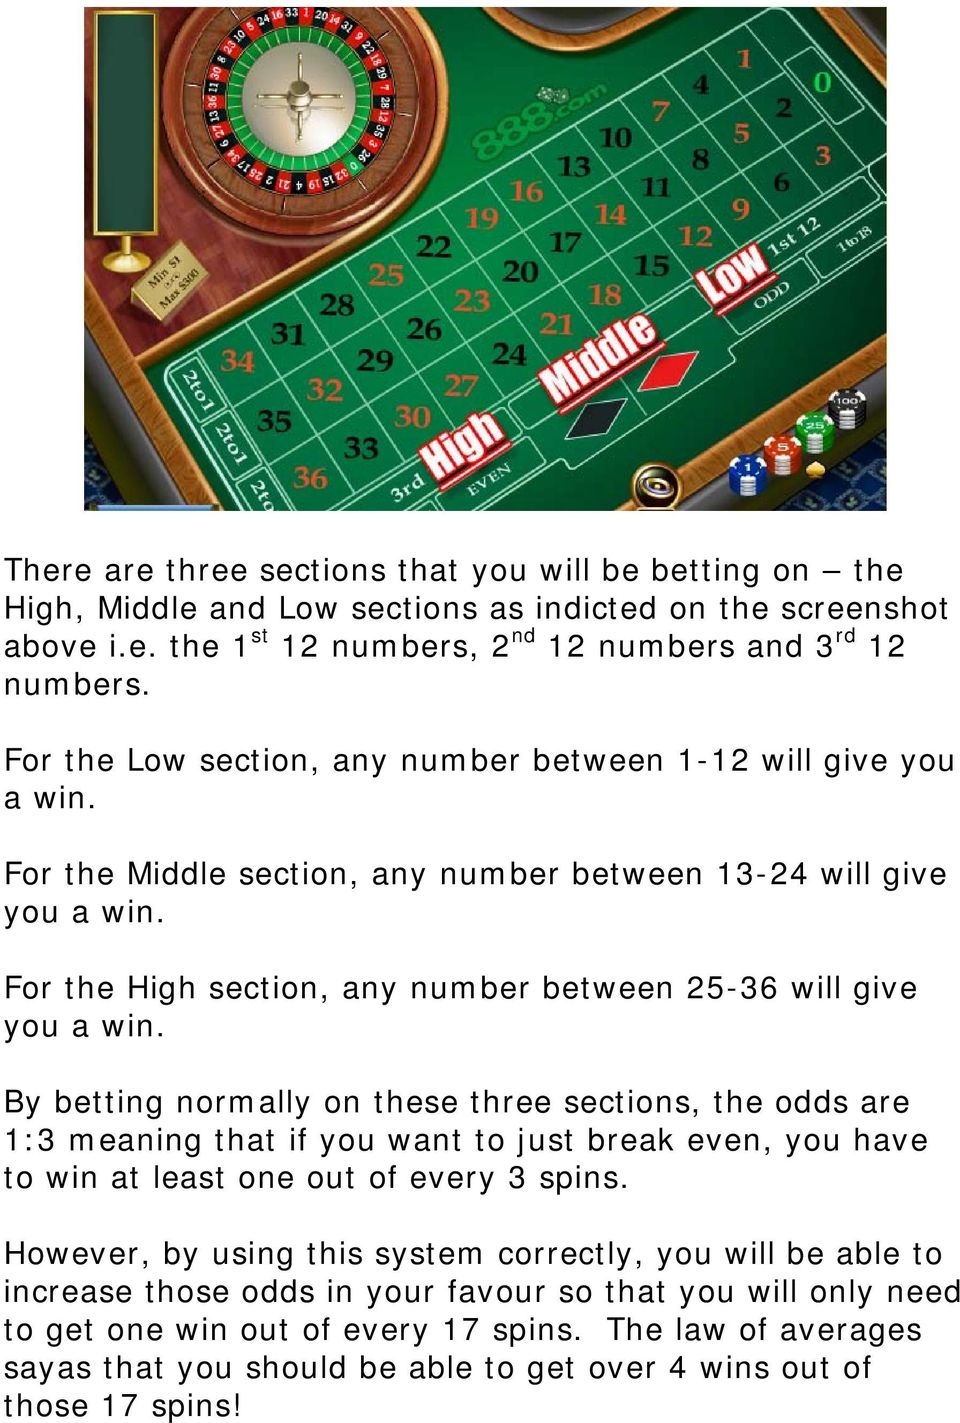 For the High section, any number between 25-36 will give you a win.